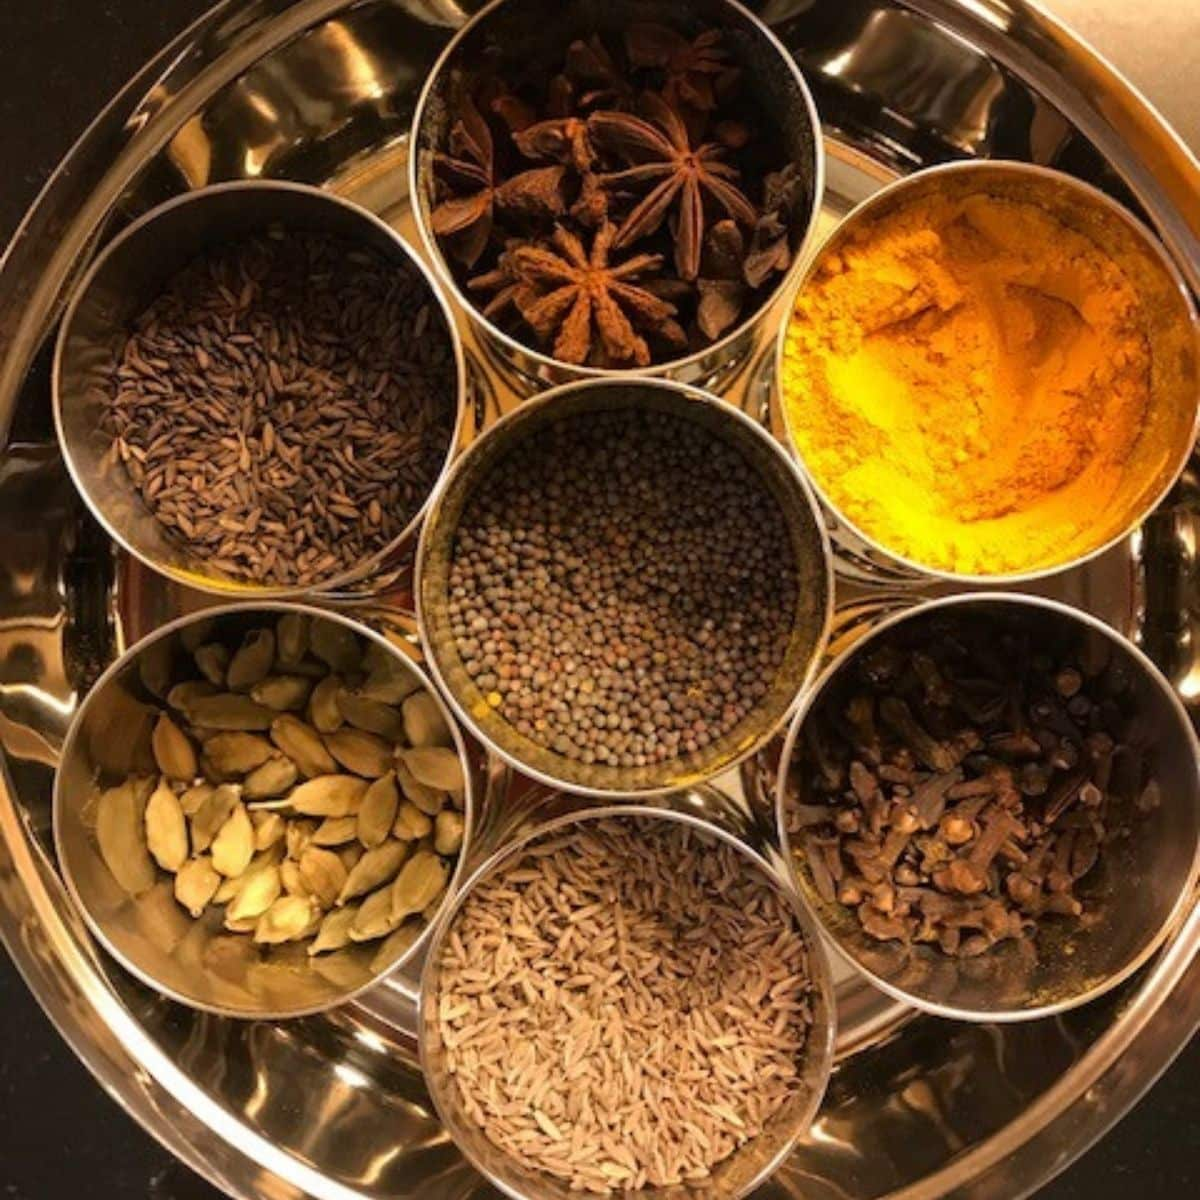 spice box with 7 bowls with different spices